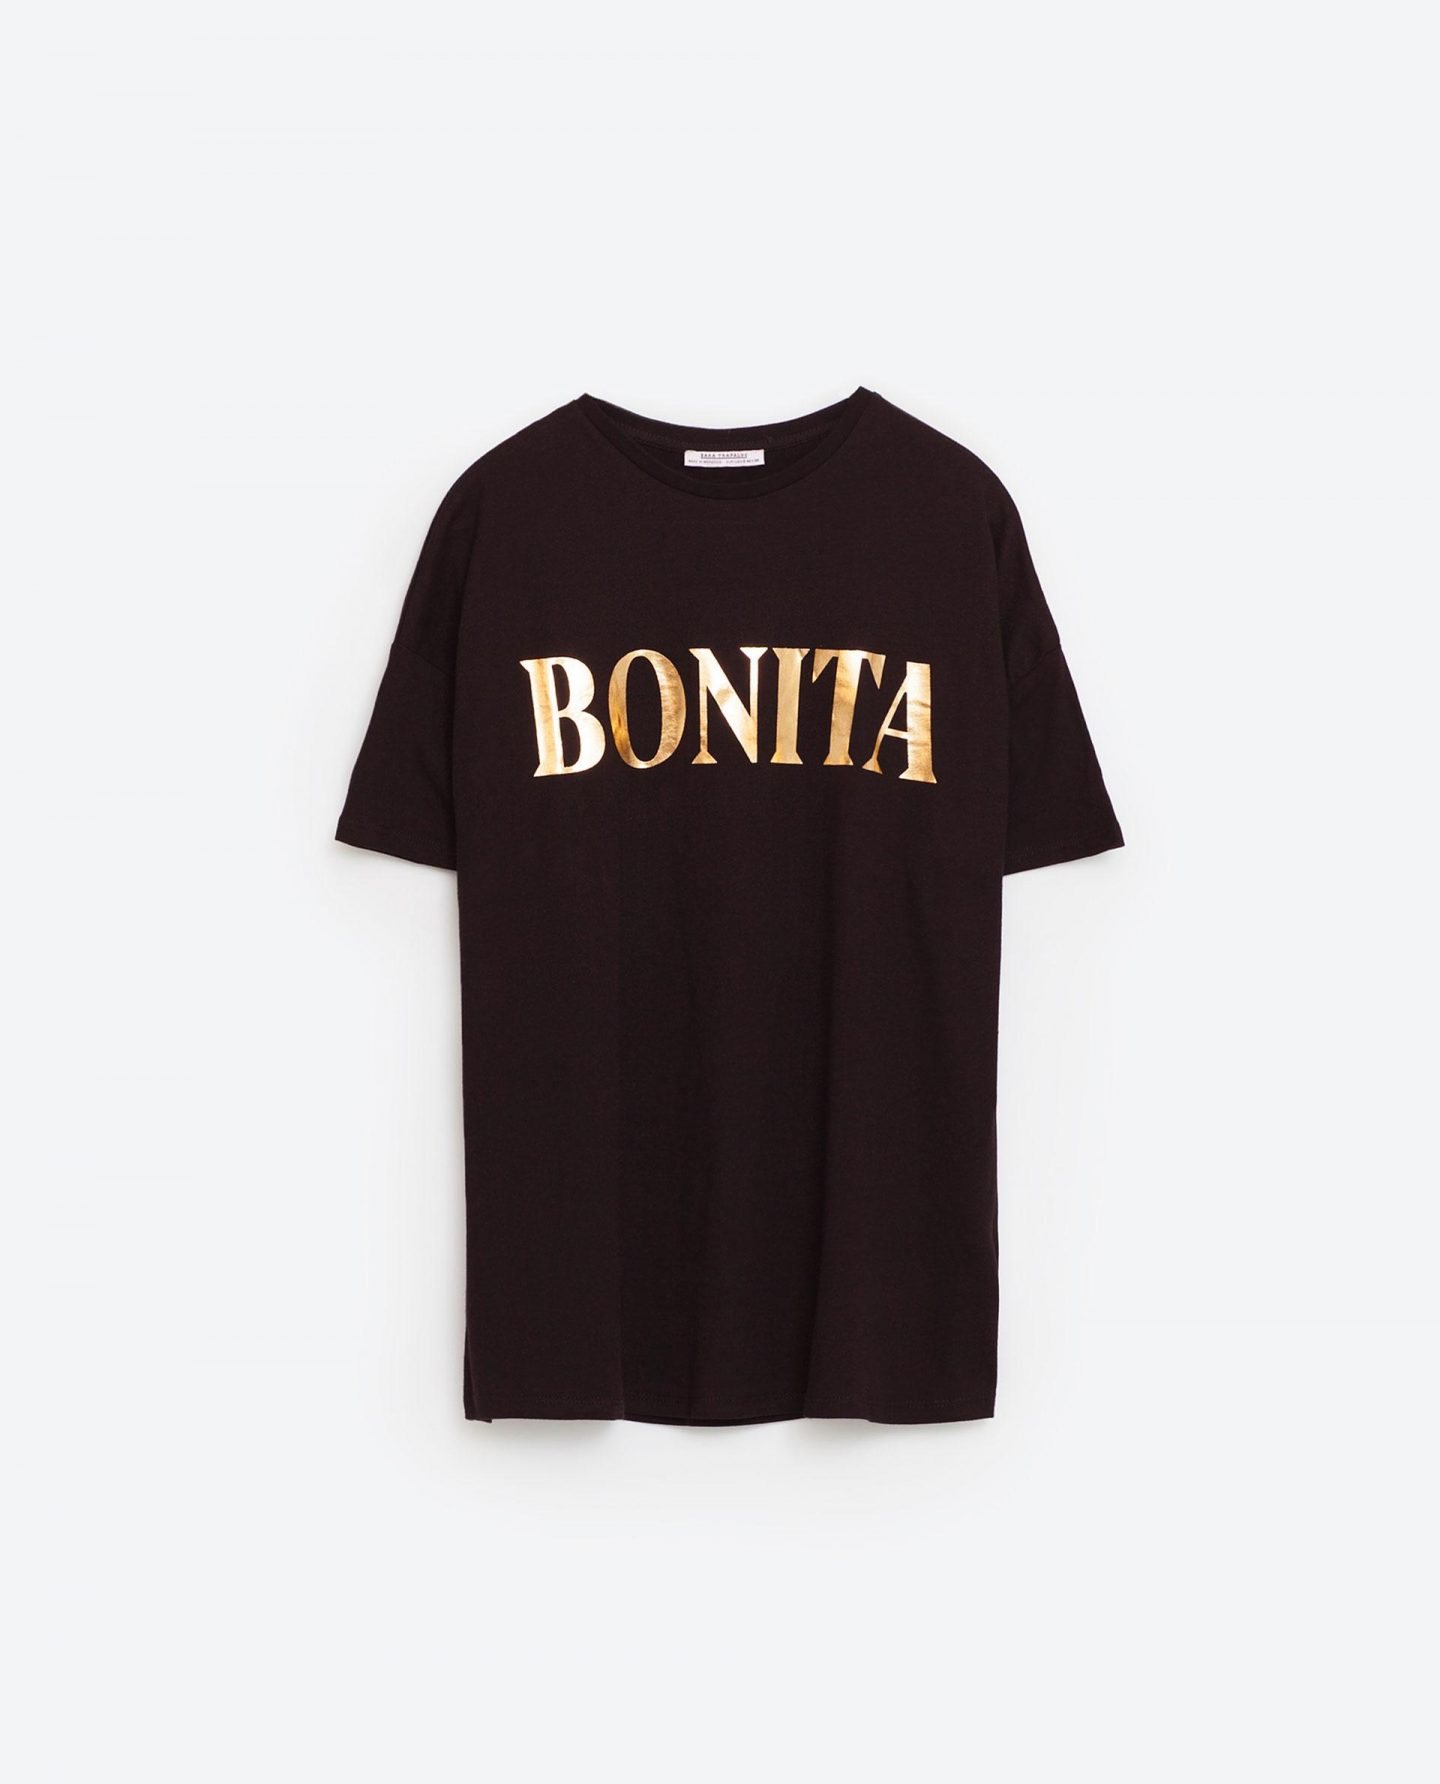 9 key pieces that have saved my wardobe this season, fashion, key pieces, new collection, Zara t-shirt, TRF at Zara. Bonita T-shirt, Bonita tee, gold slogan t-shirt